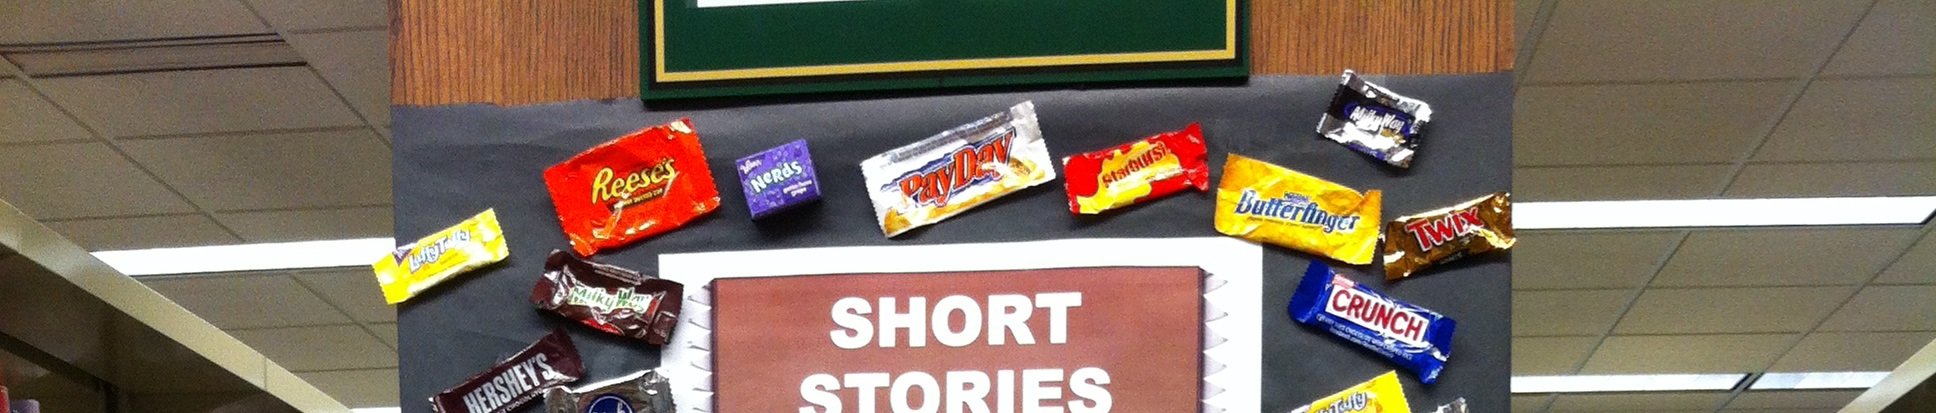 Short Stories, the Snack Size Novel